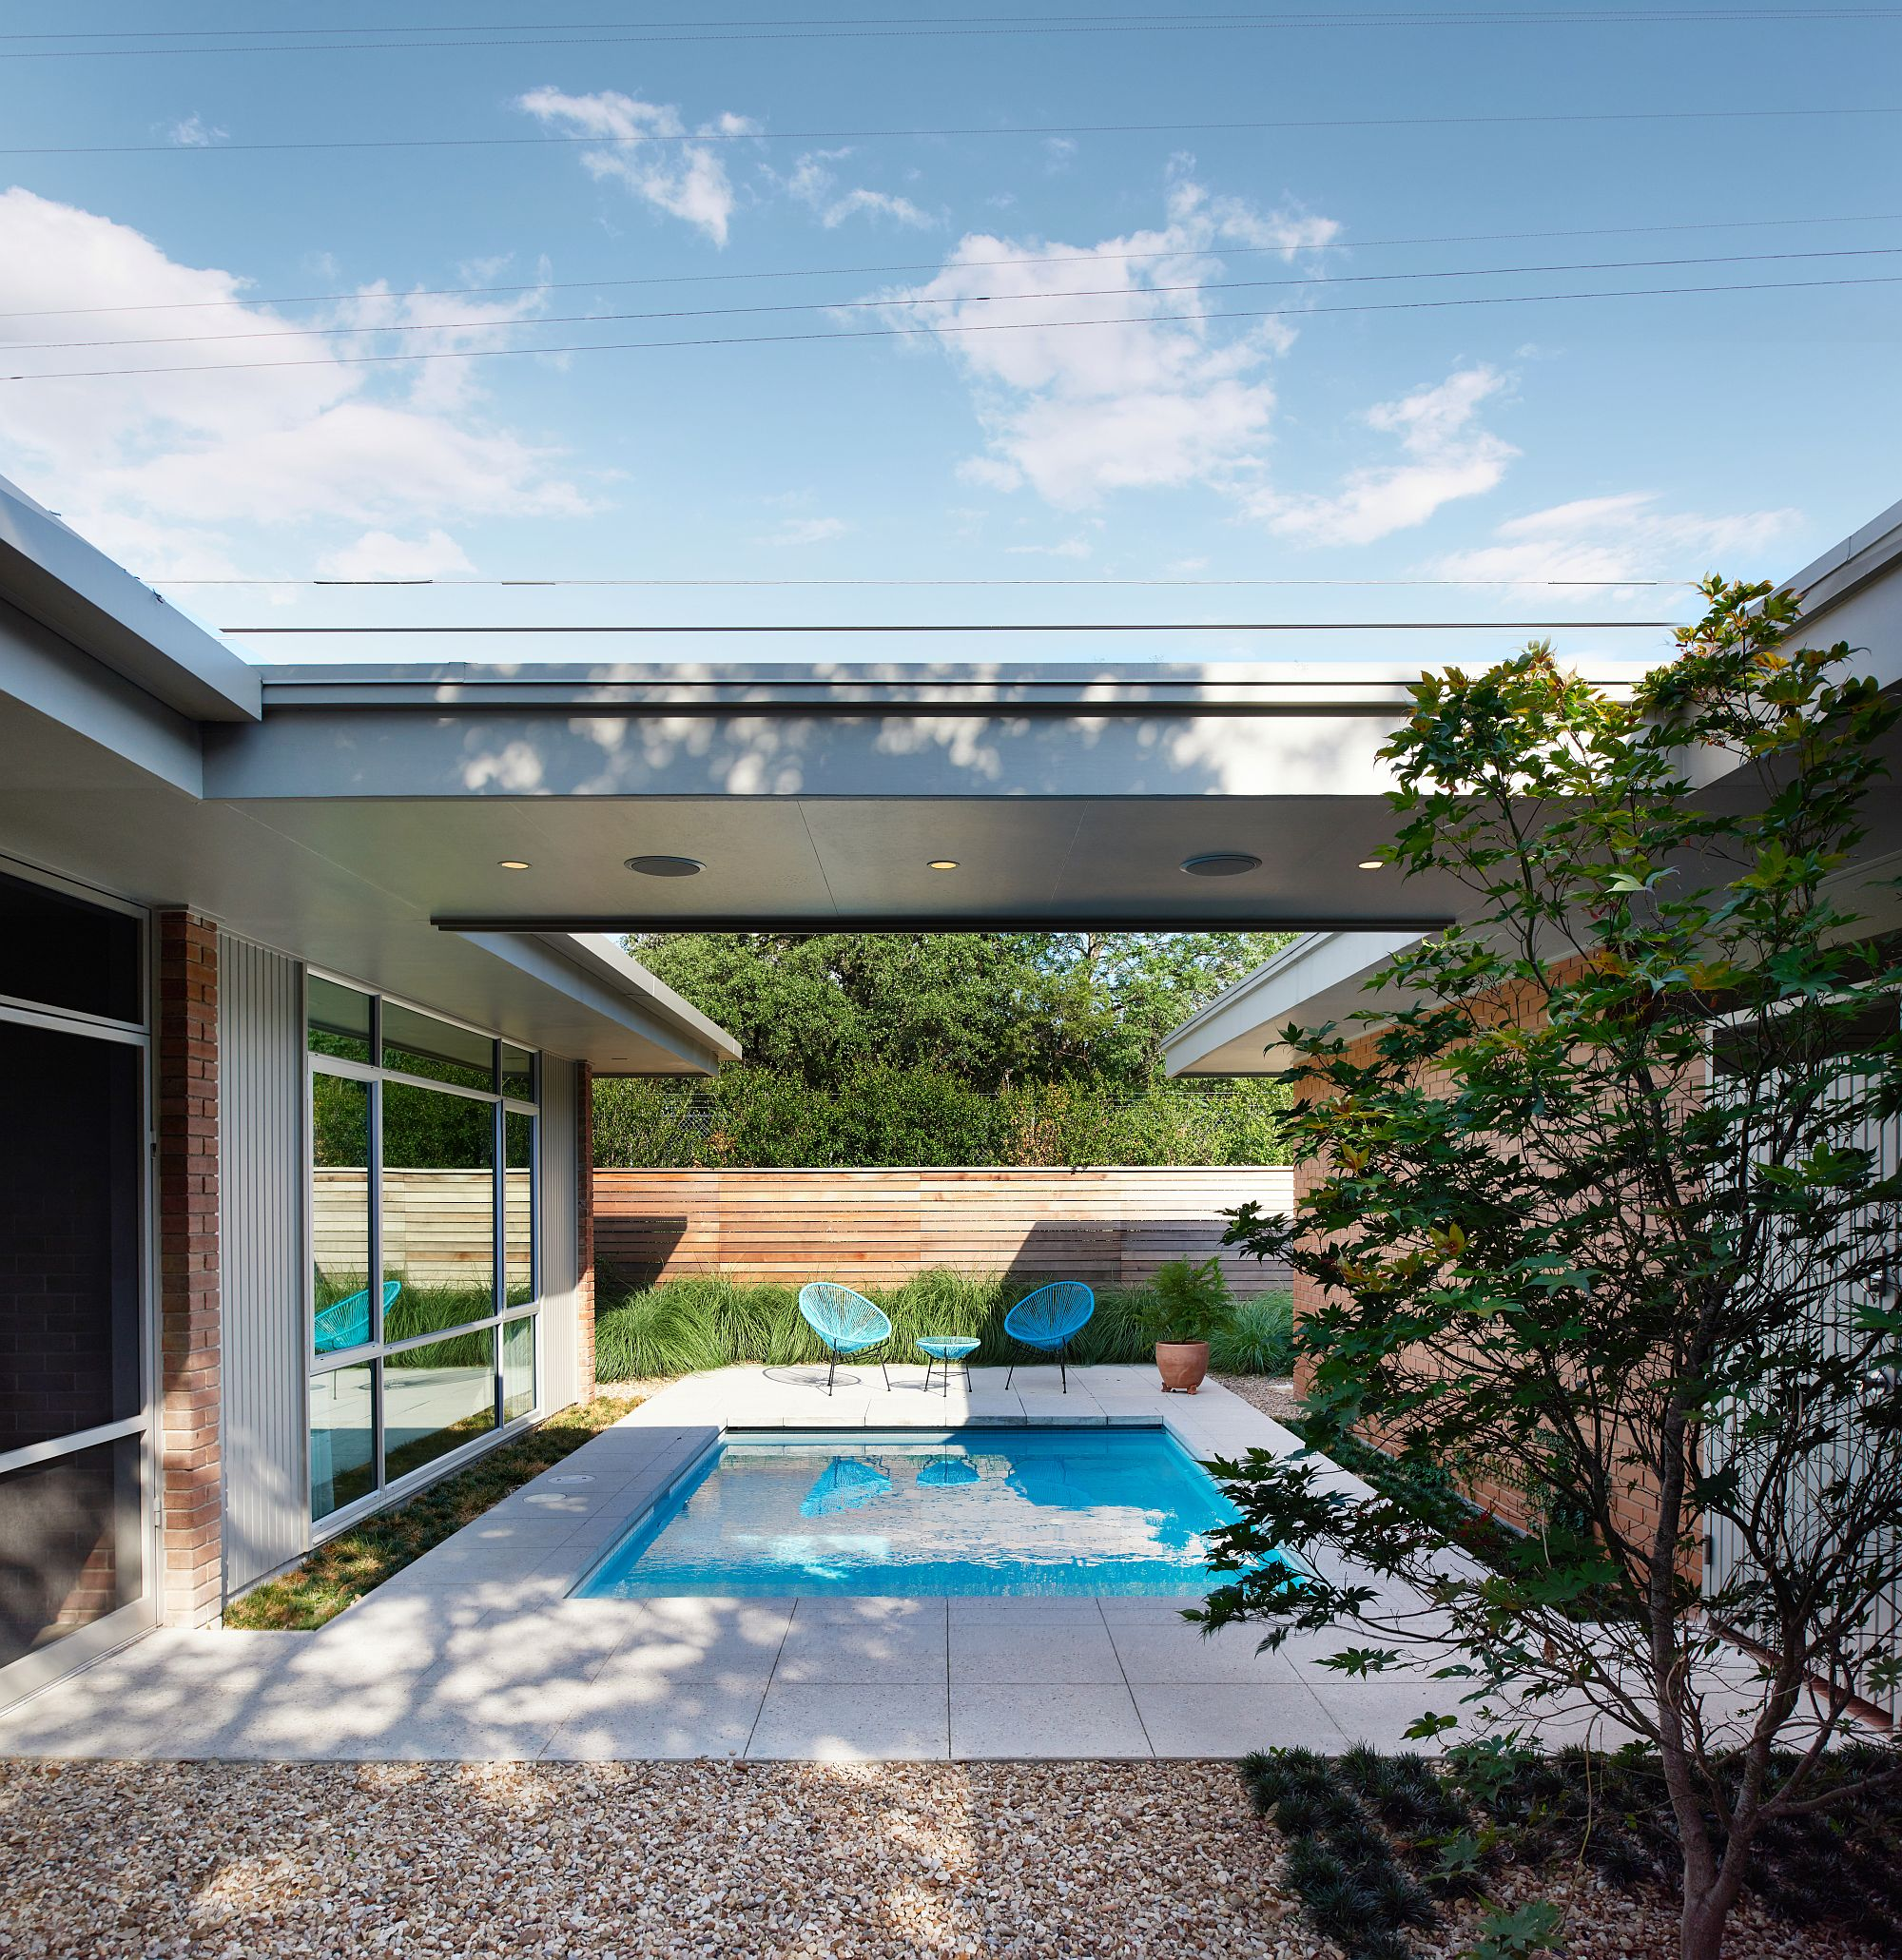 Sheltered outdoor spaces and pool area at the revamped home in Austin